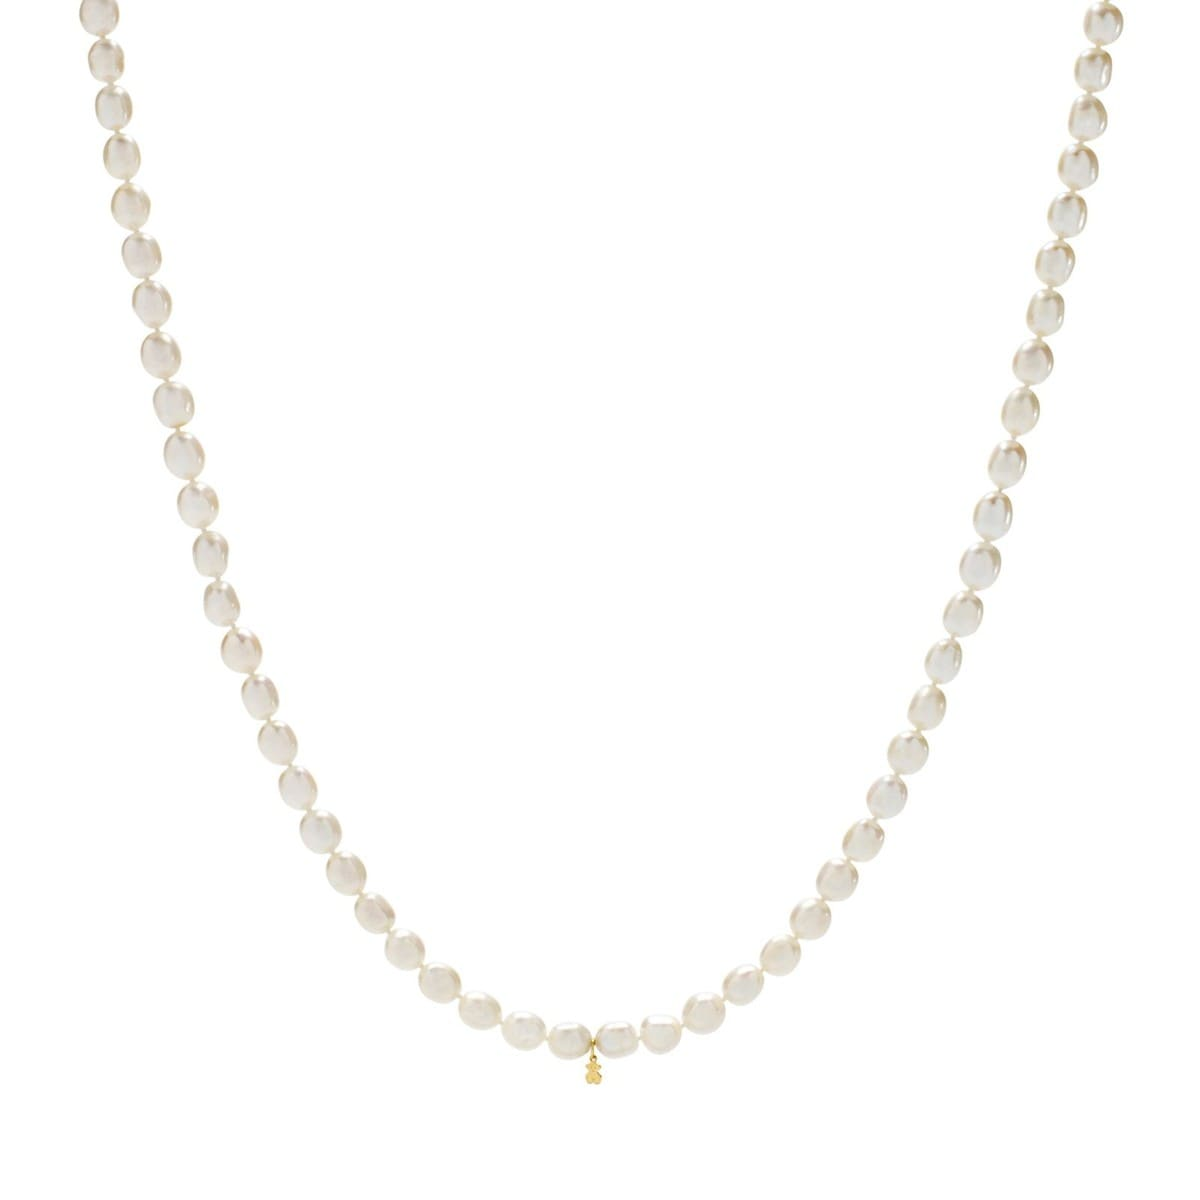 Gold TOUS Pearl Necklace with Pearl